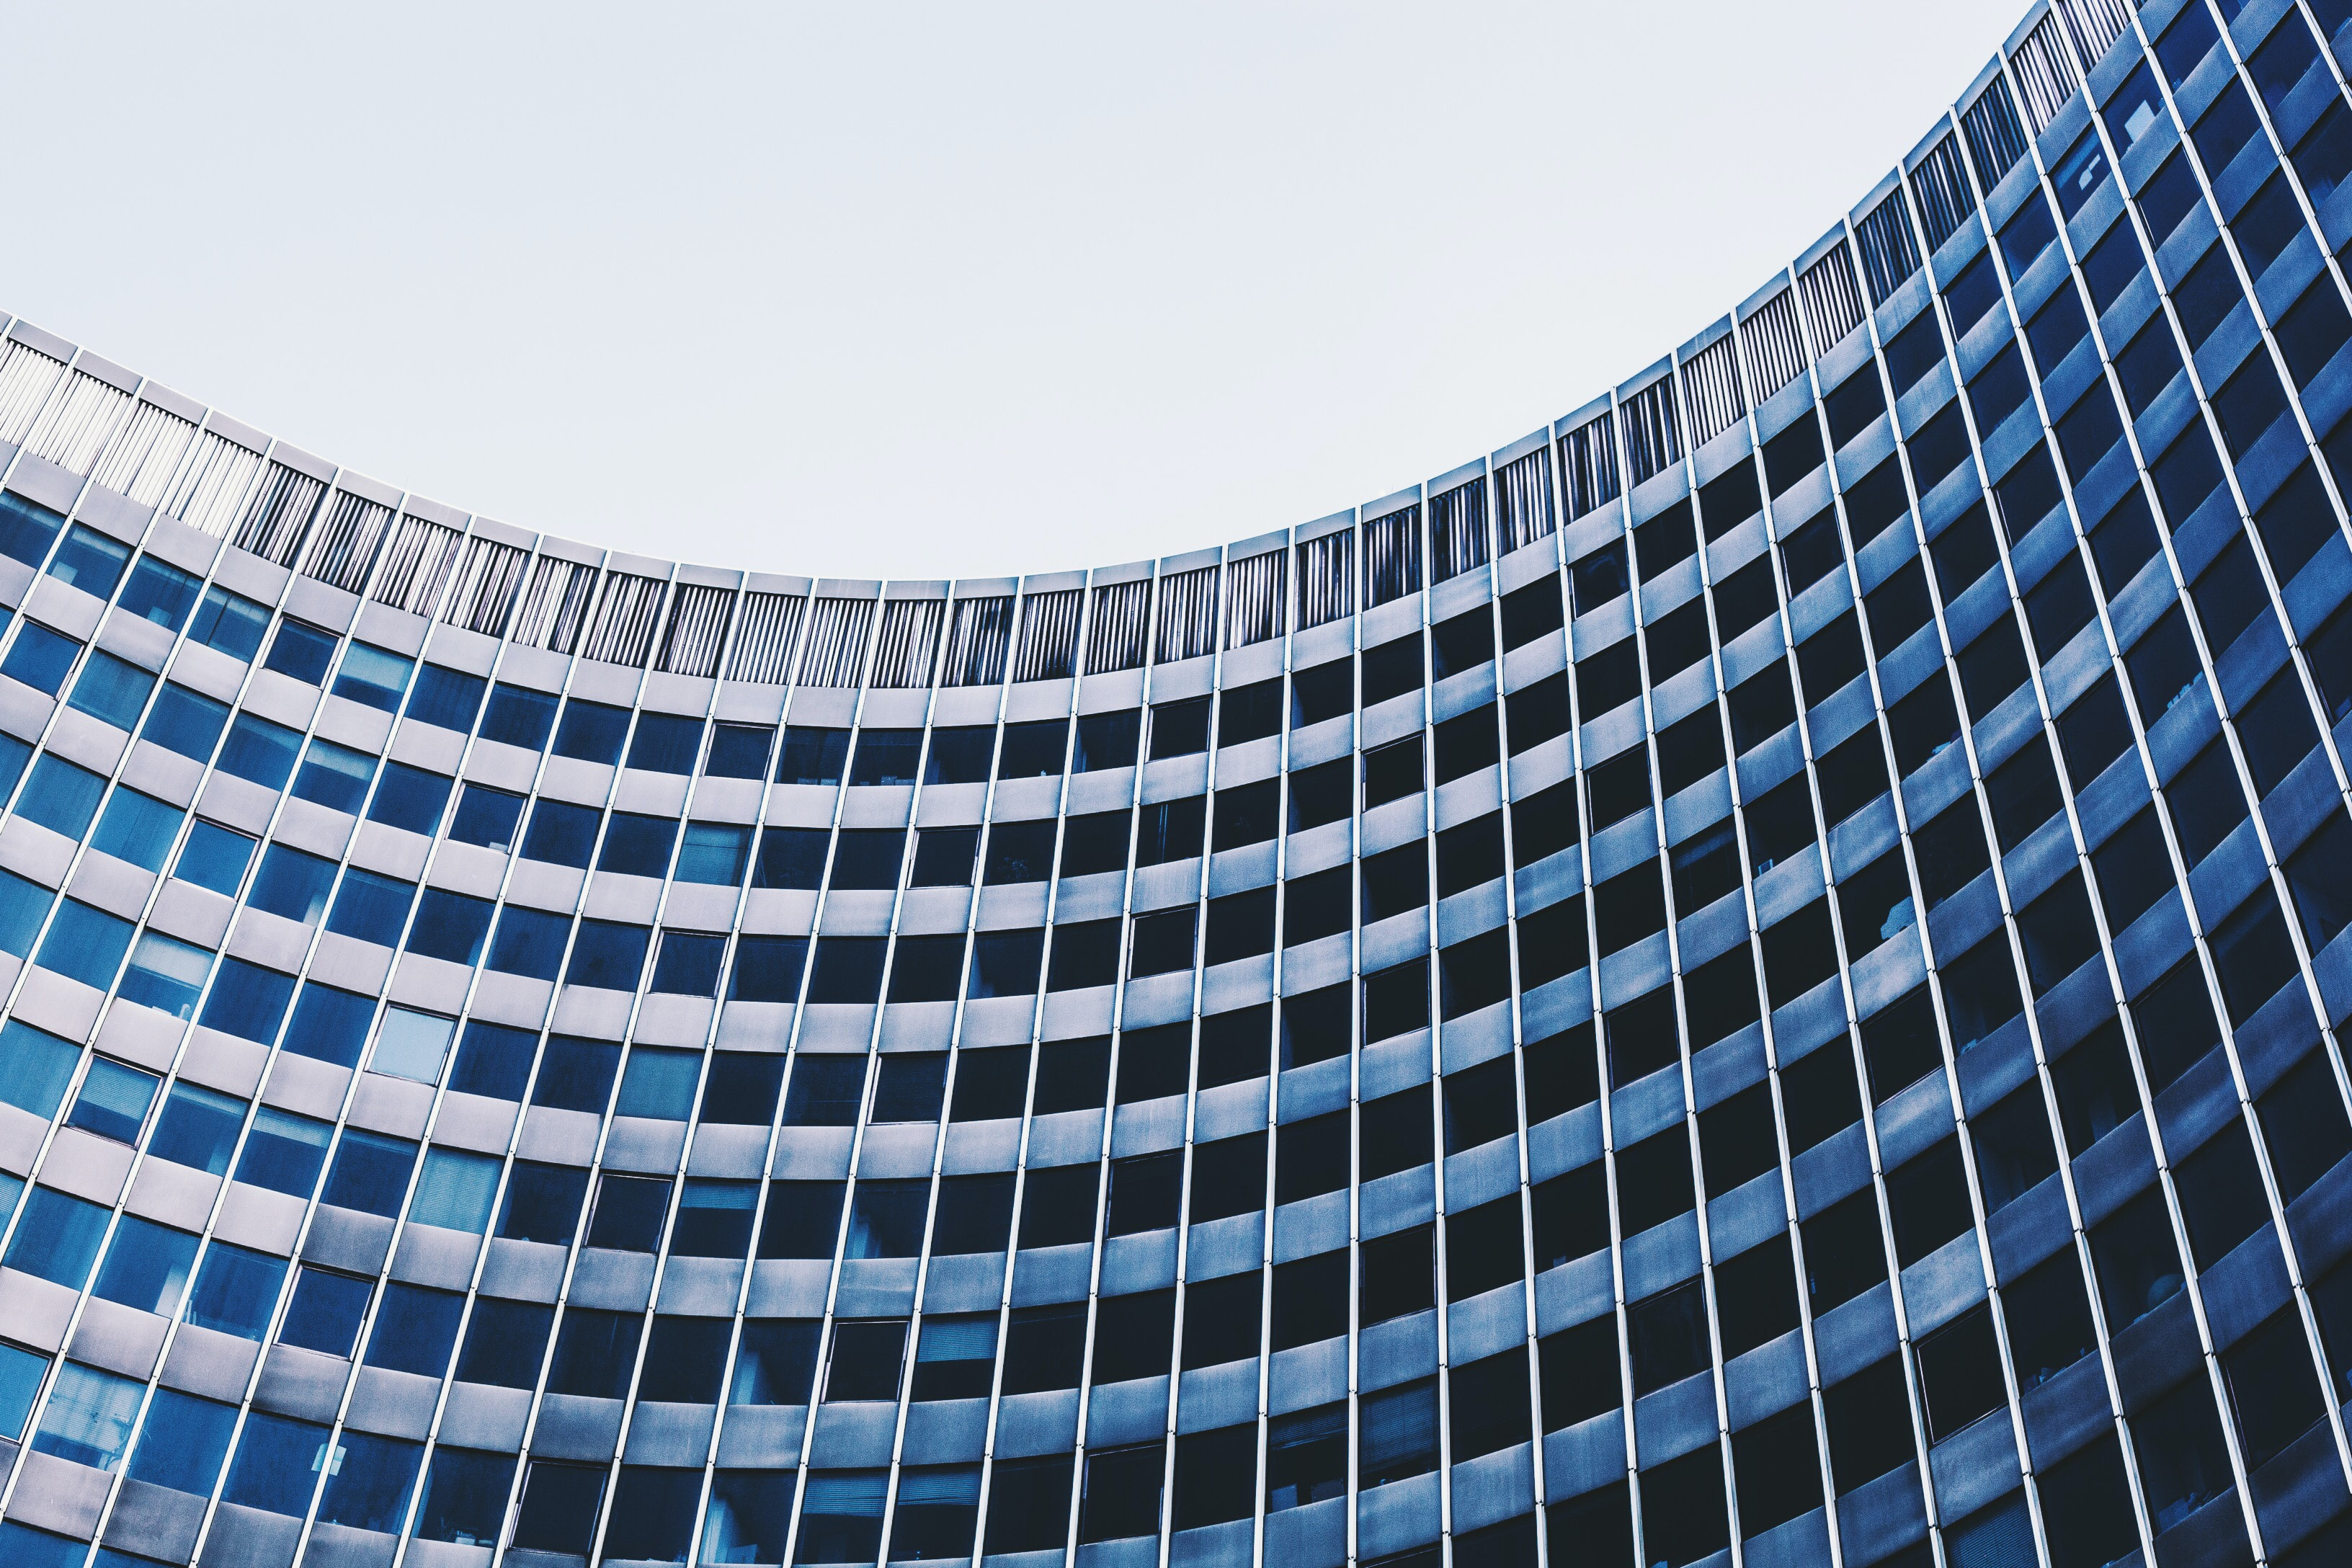 A curved facade of a government building in Brussels